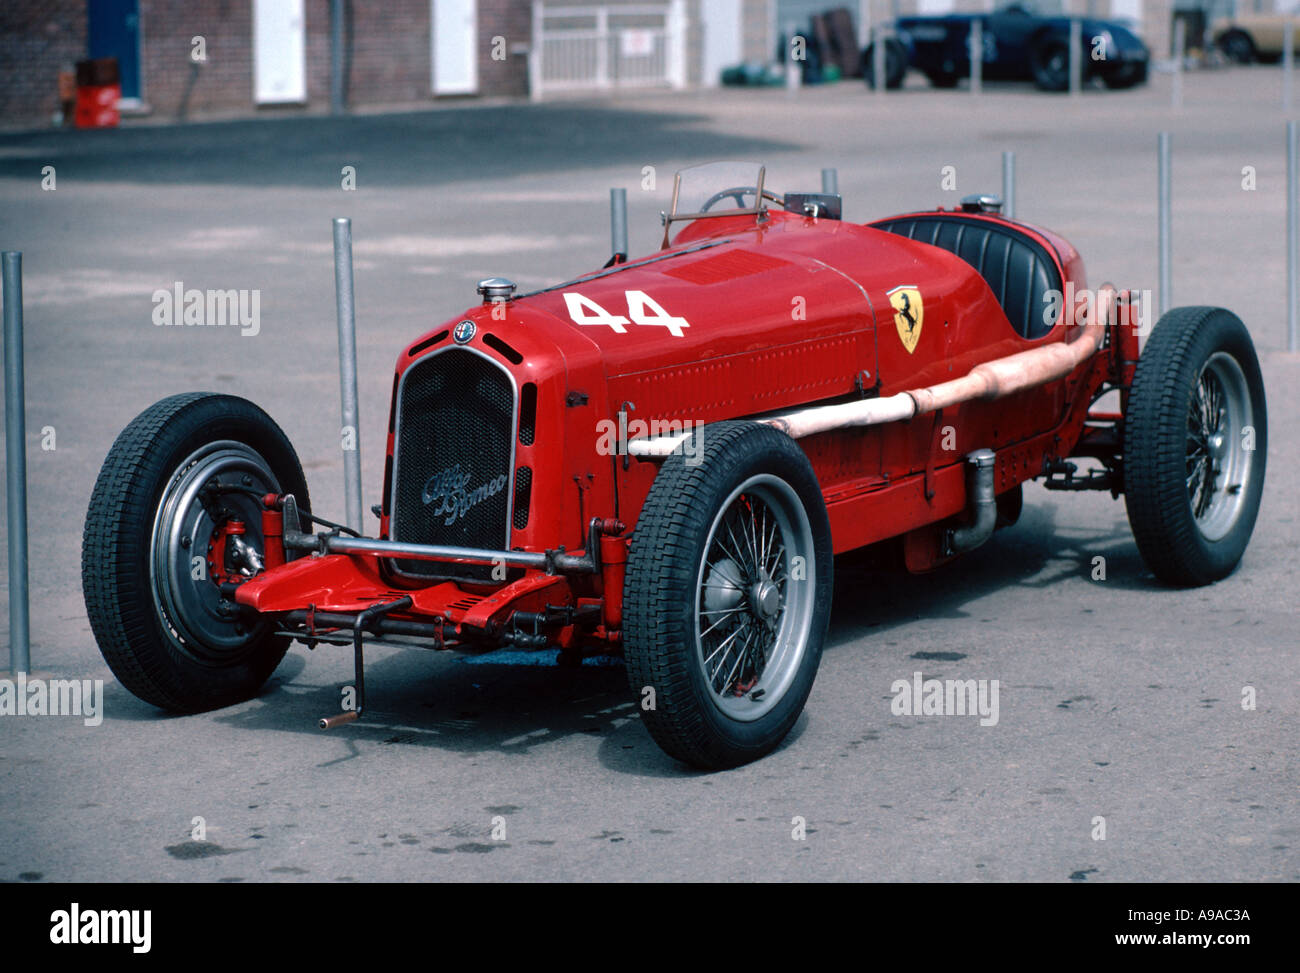 CHIRON ALFA ROMEO MONOPOSTO; Alfa Romeo Monza Supercharged 8 Cylinder Sports  Racing Car With Prancing Horse Emblem Of The Scuderia